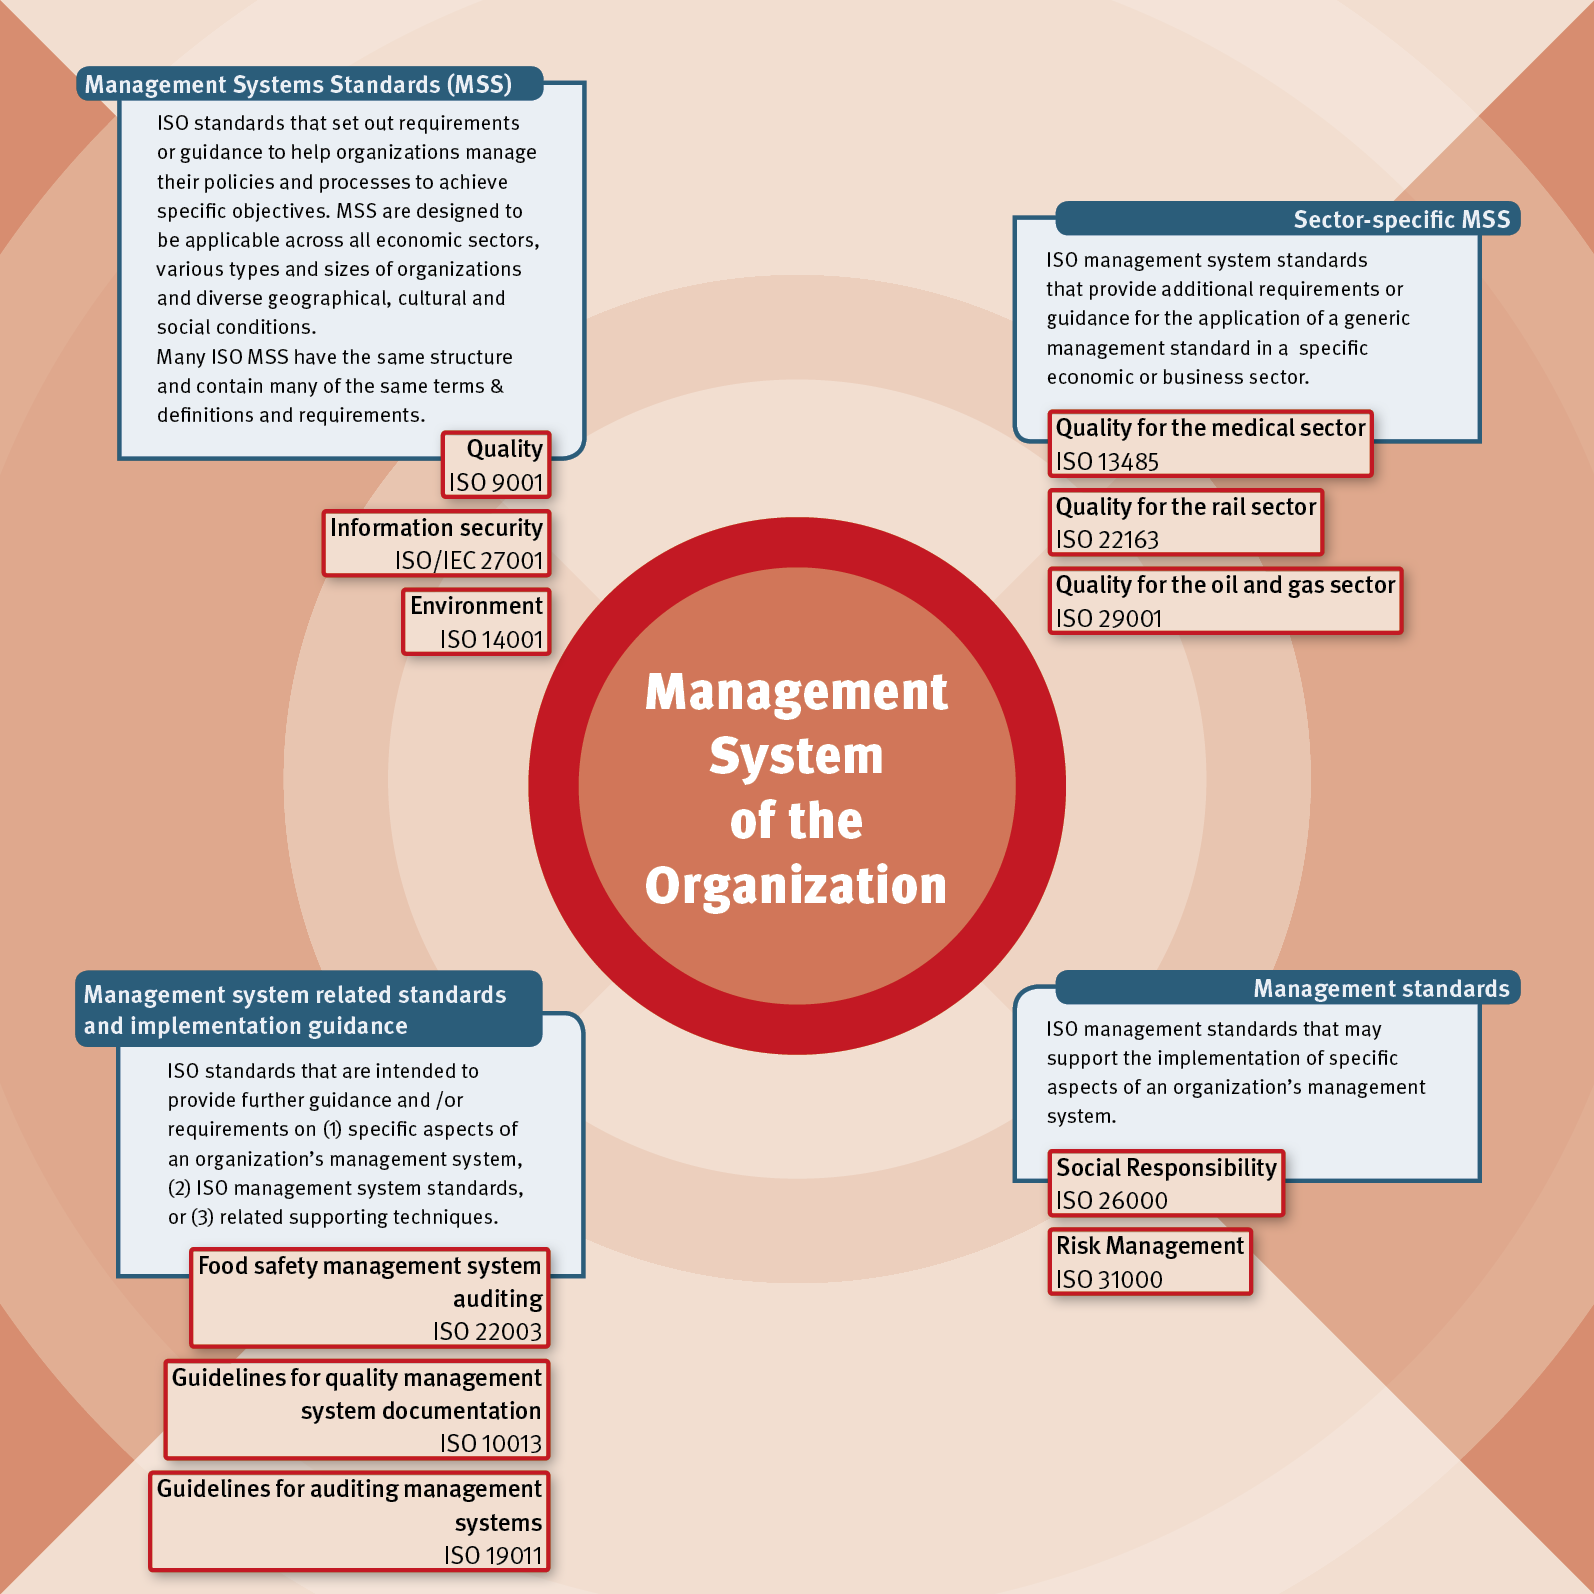 iso management system standards